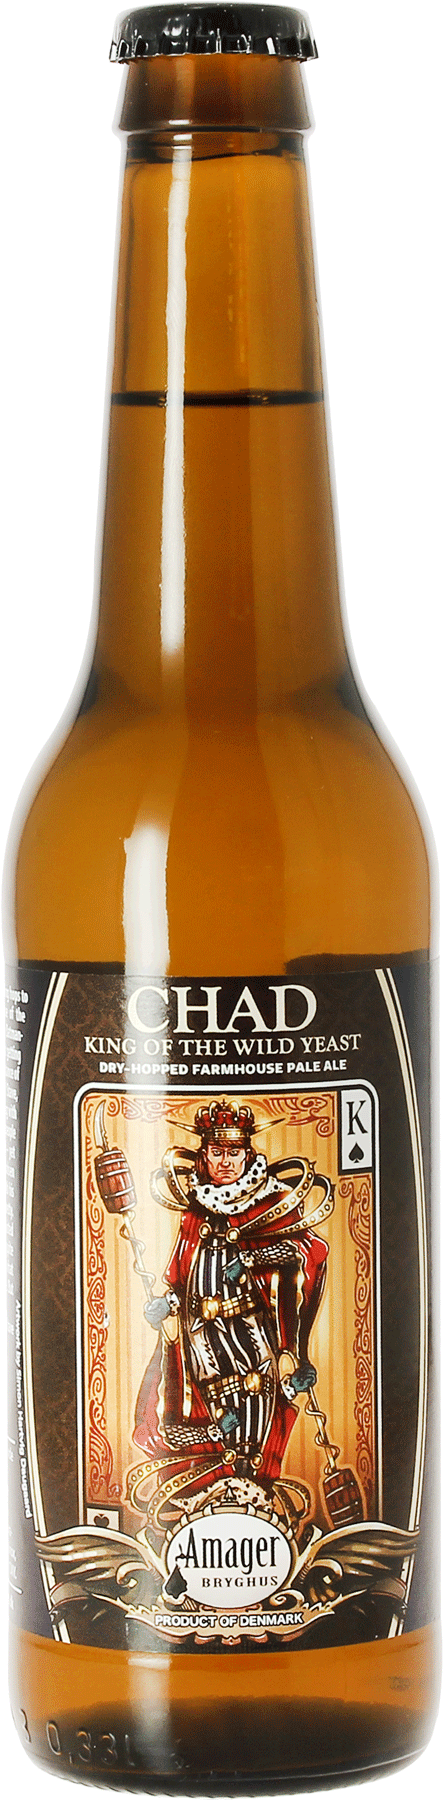 Amager, Chad, King of The Wild Yeasts